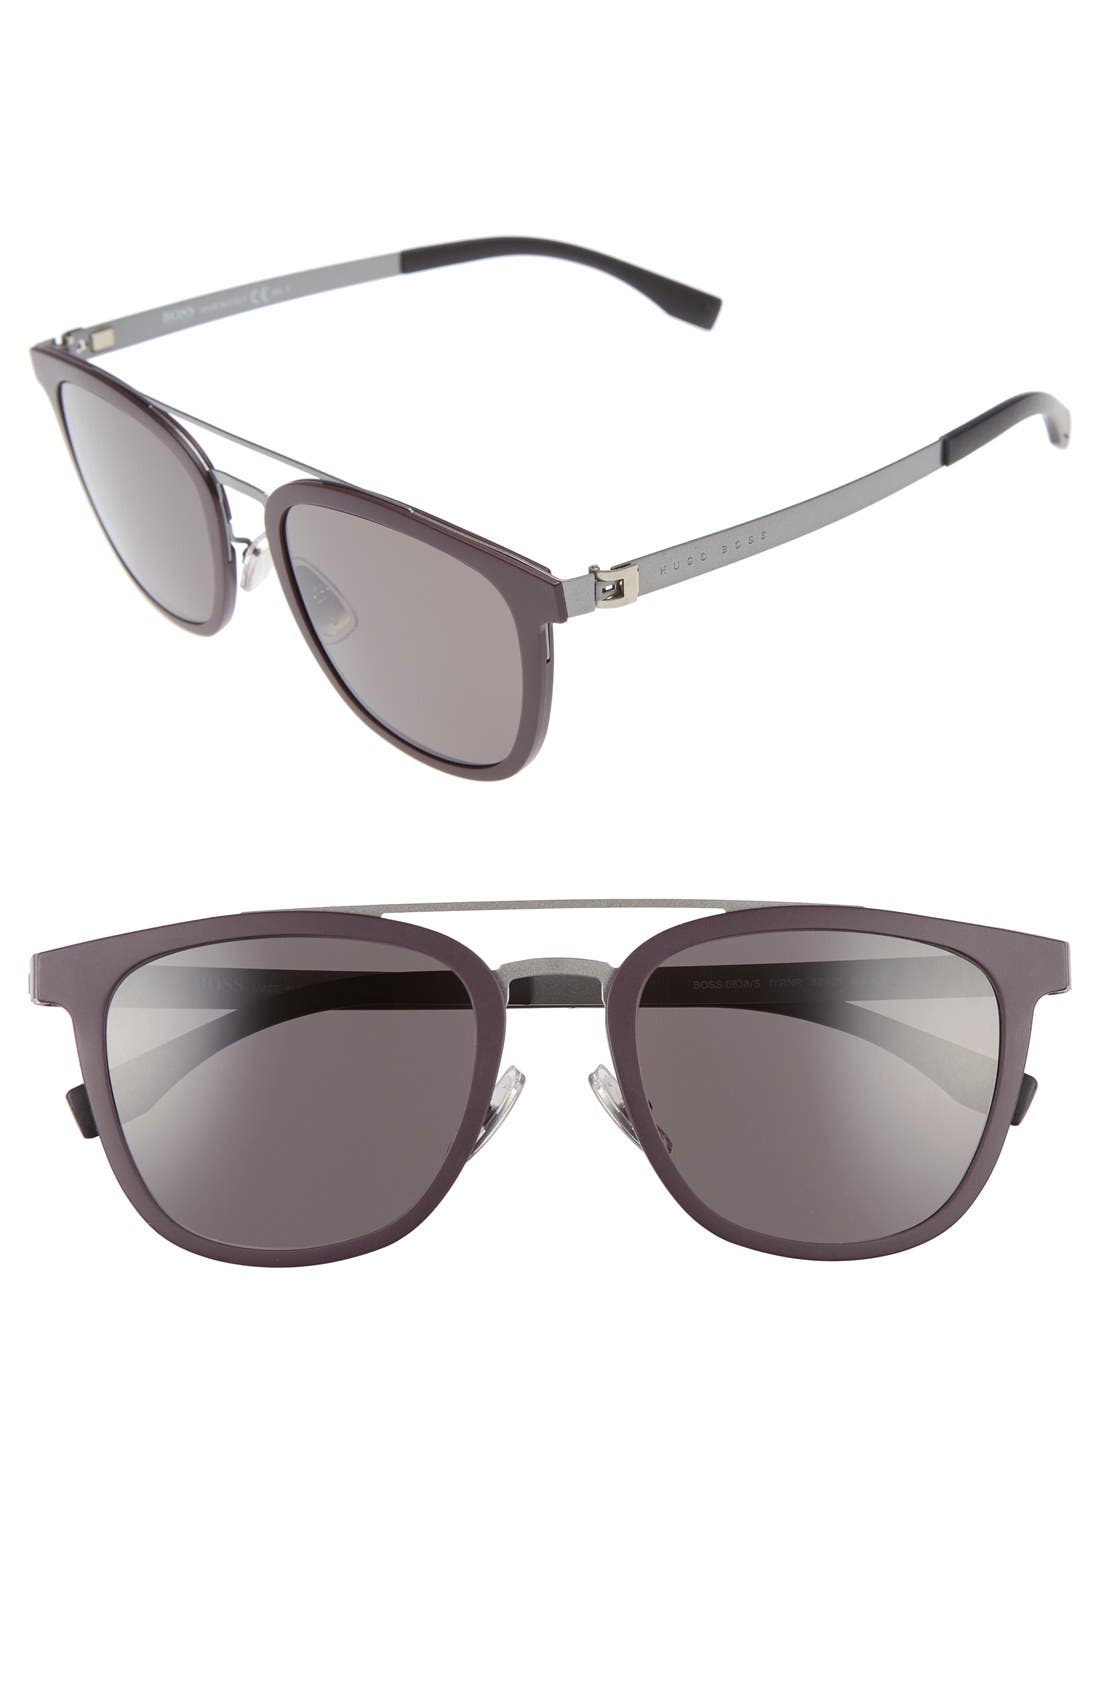 838/S 52mm Sunglasses,                             Main thumbnail 1, color,                             Burgundy/ Ruthenium